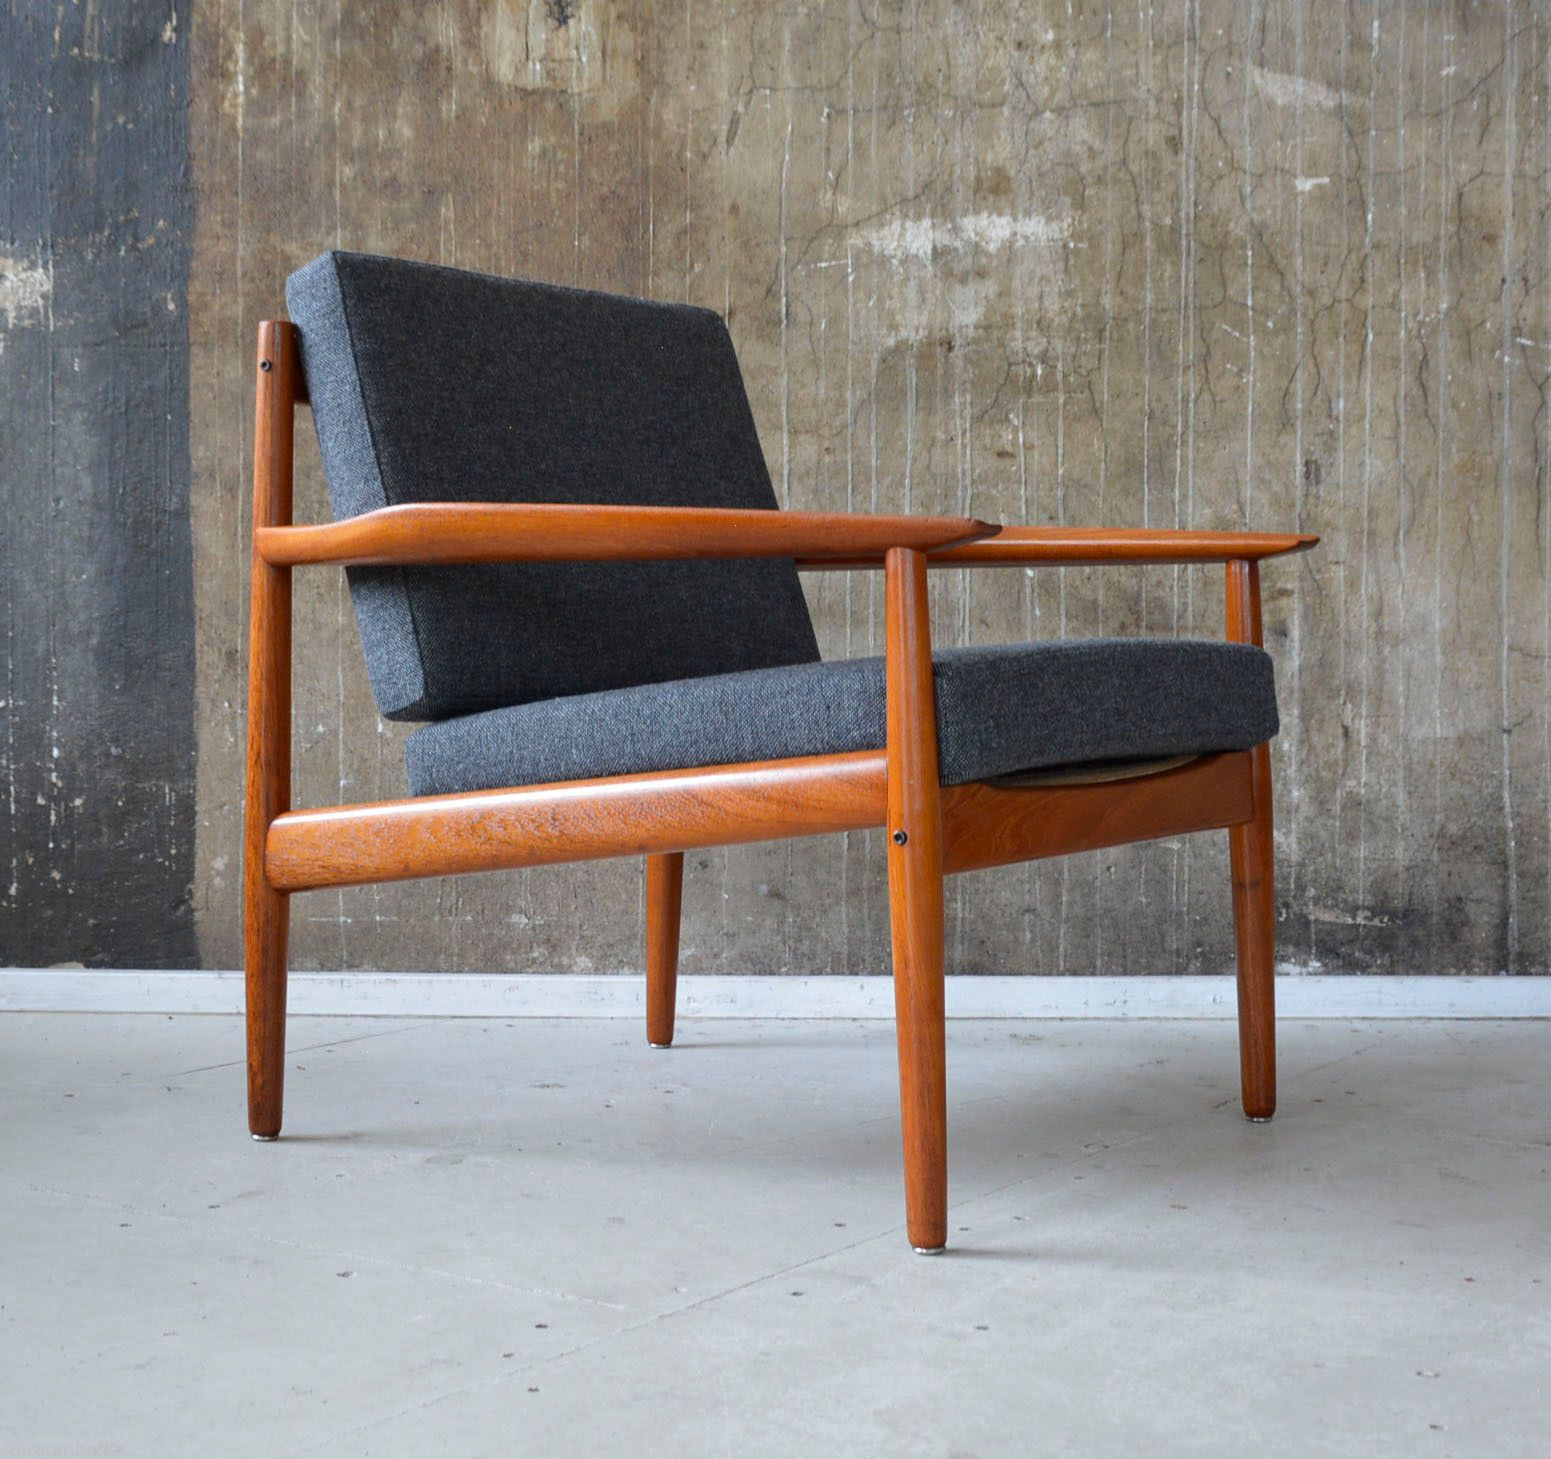 Arne Vodder Sessel 60er Arne Vodder Teak Sessel Glostrup 60s Easy Chair Danish Design